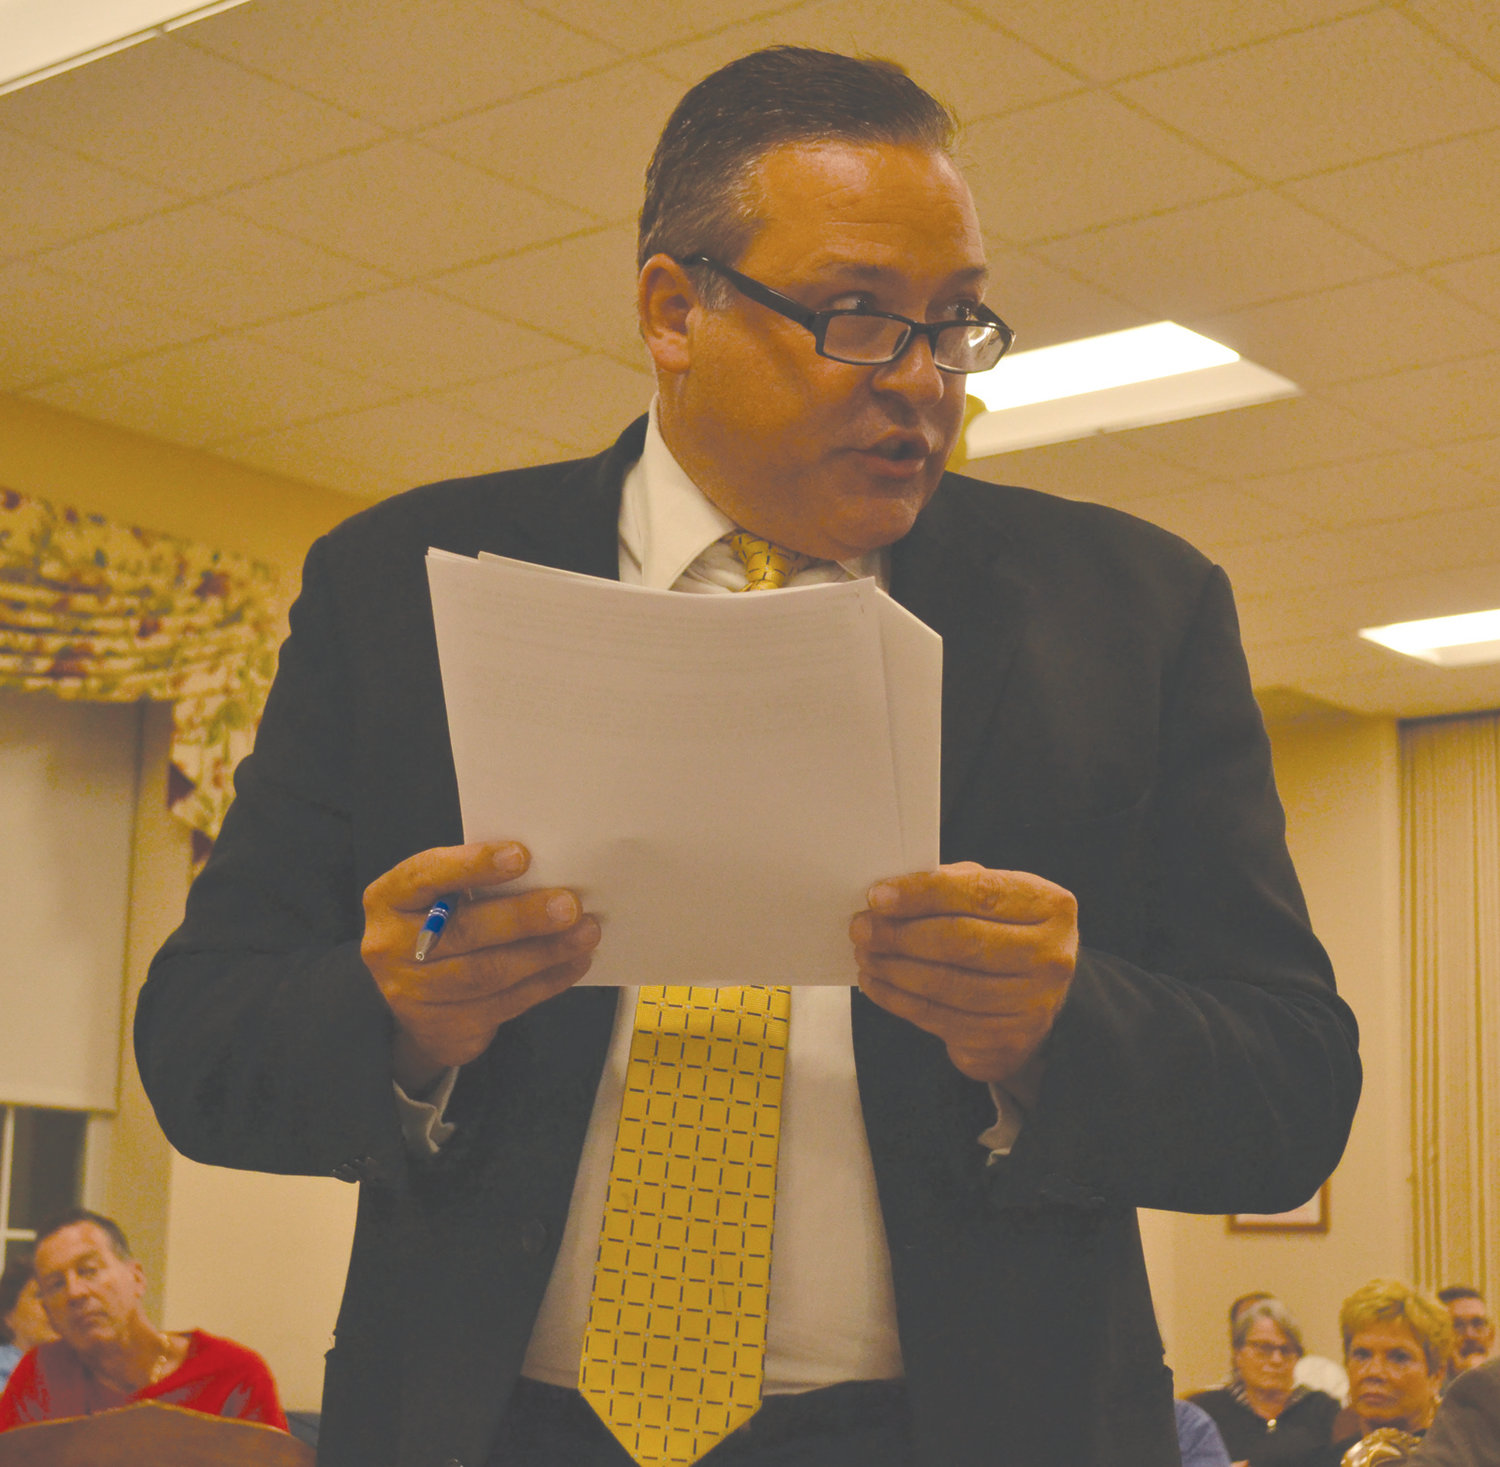 PLEADING HIS CASE: Attorney Frank Sciacca, who represents two parties against the potential Green Development solar installation, said the project would not fit the town's comprehensive plan.